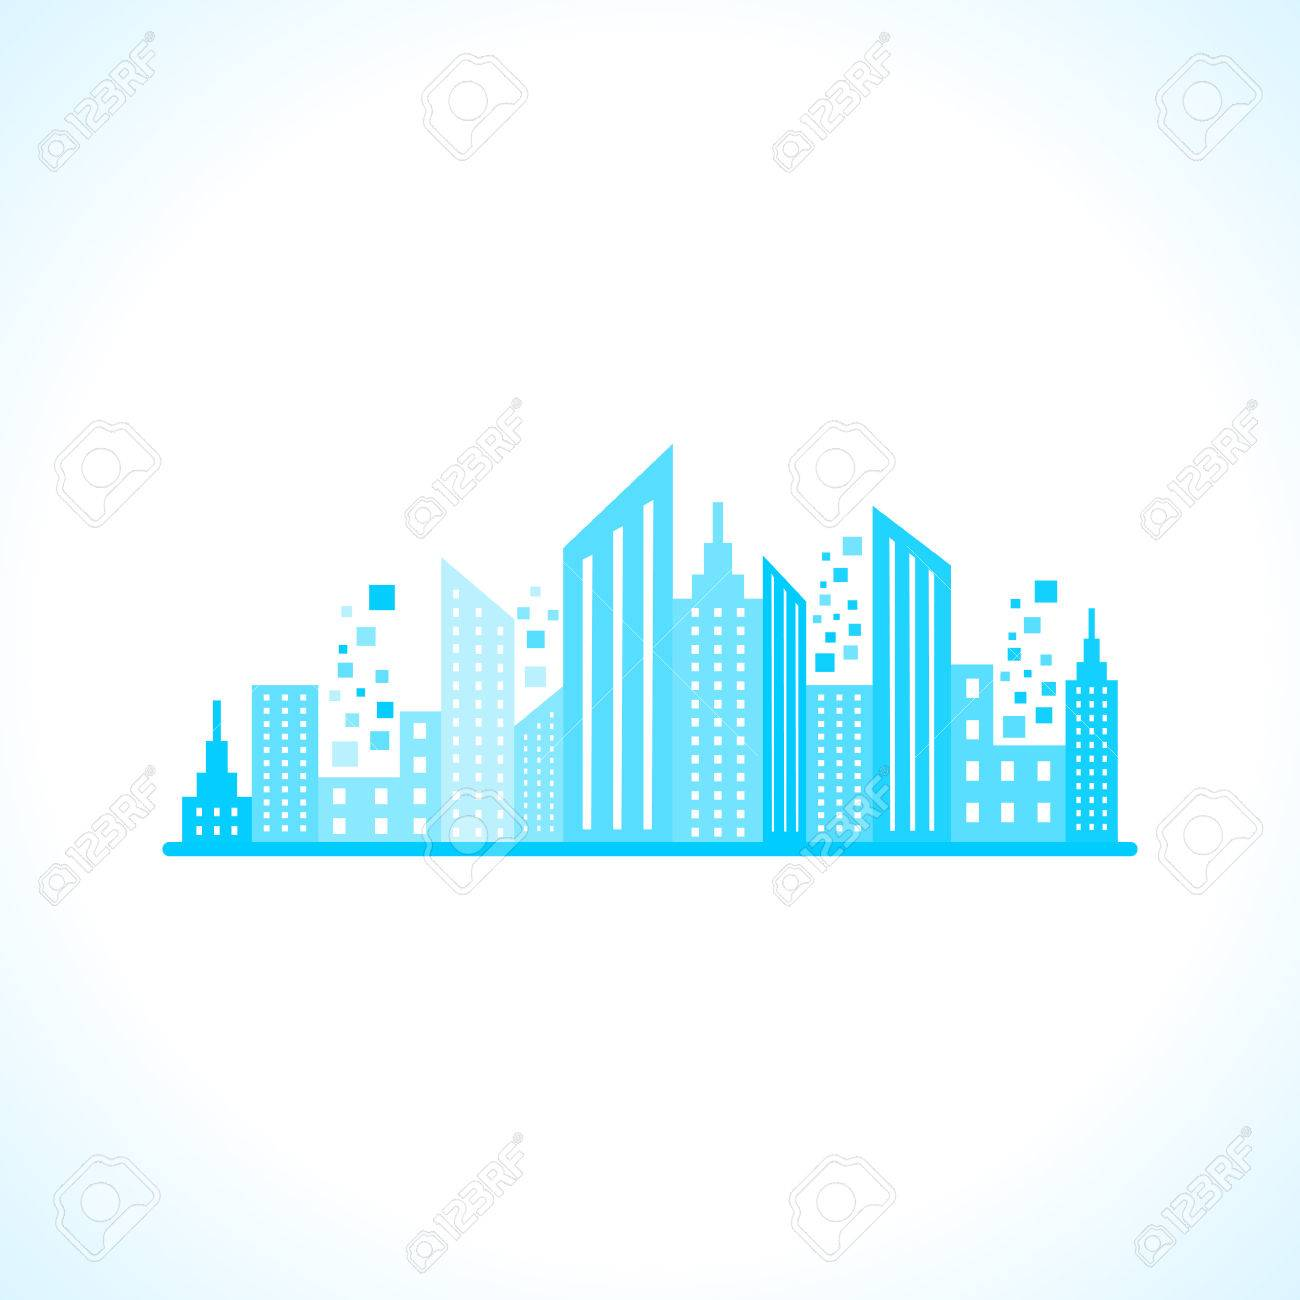 Illustration of abstract blue building design - 22551712